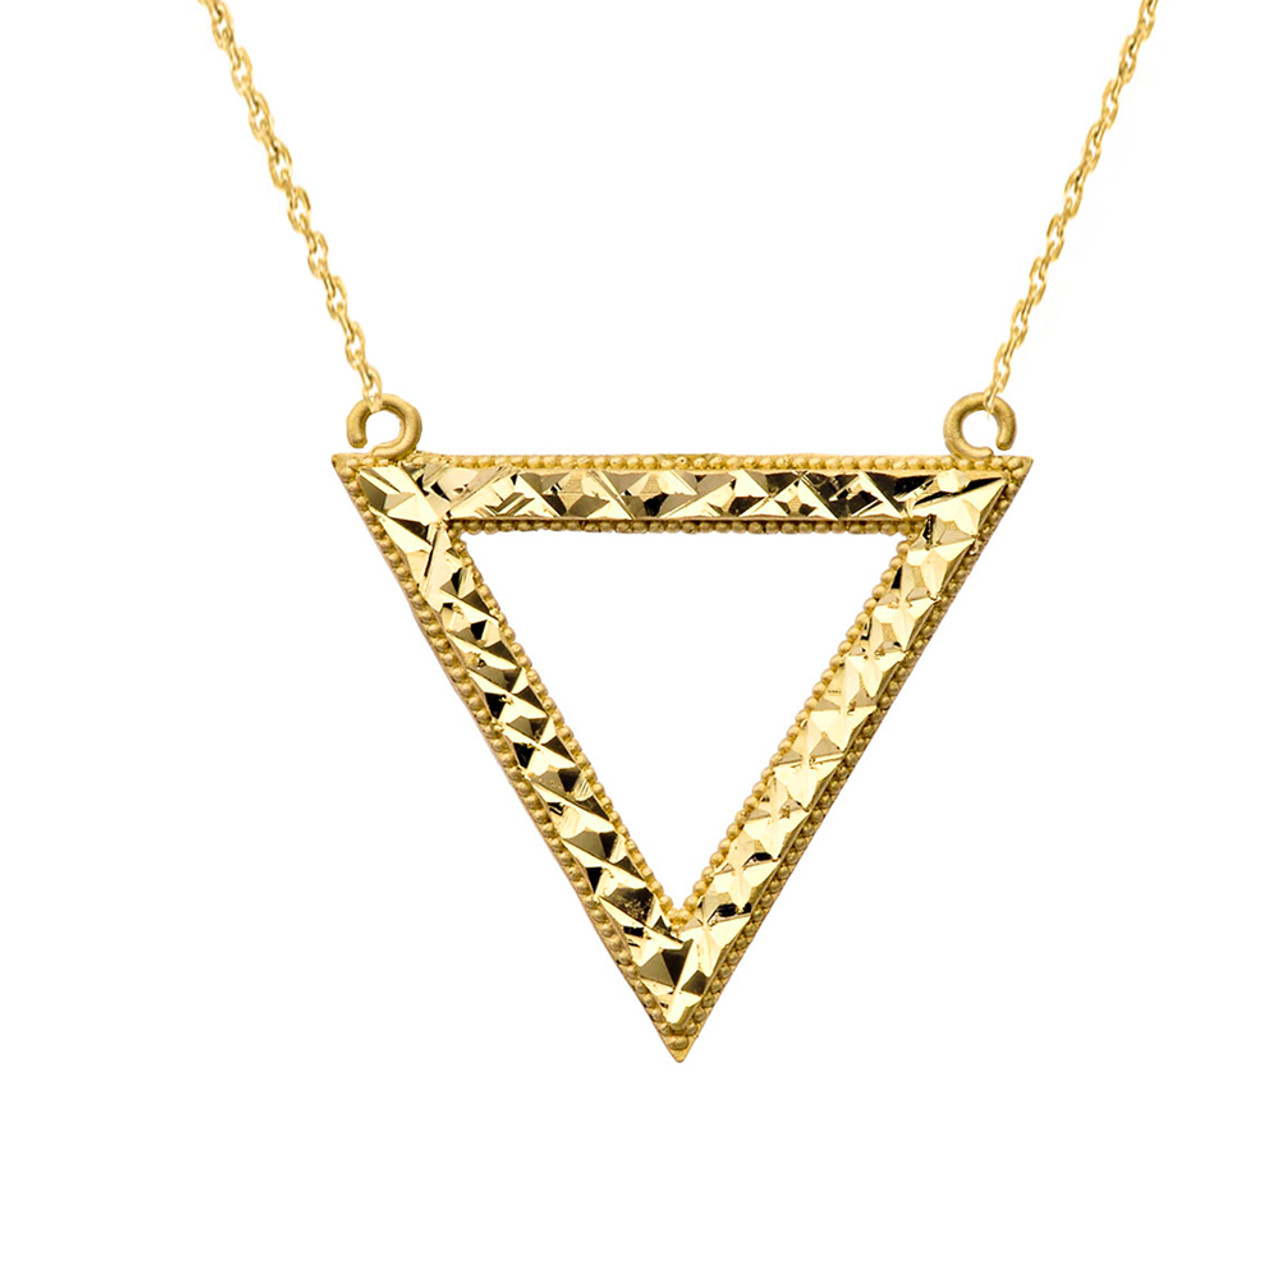 511b6d885ba55 Chic Open Triangle Necklace in 14K Yellow Gold